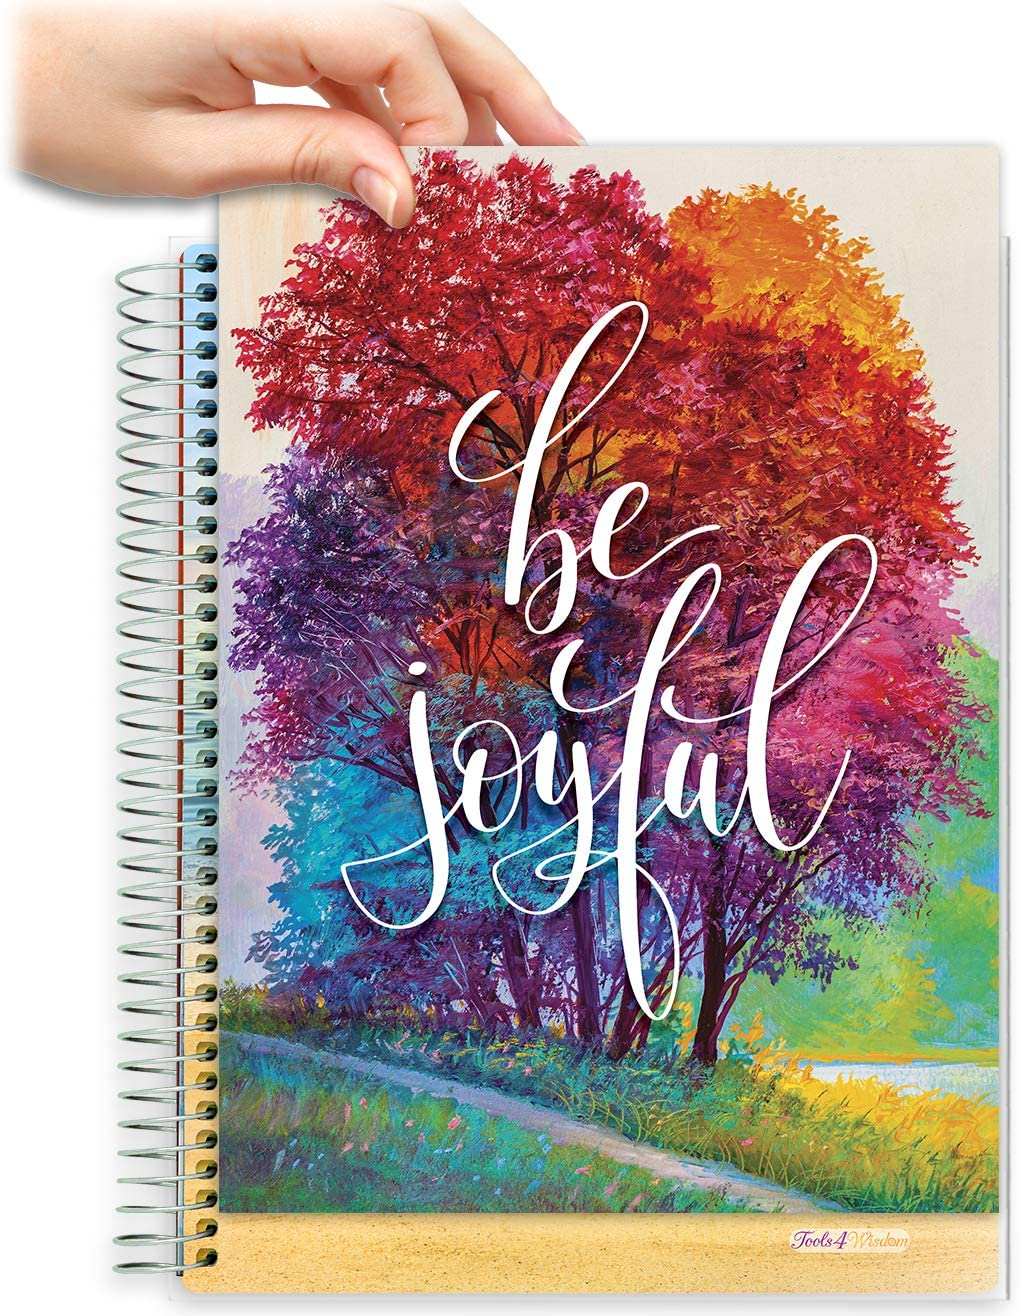 8.5x11 Customizable Softcover Planner • April 2021 to June 2022 Academic Year •  Be Joyful